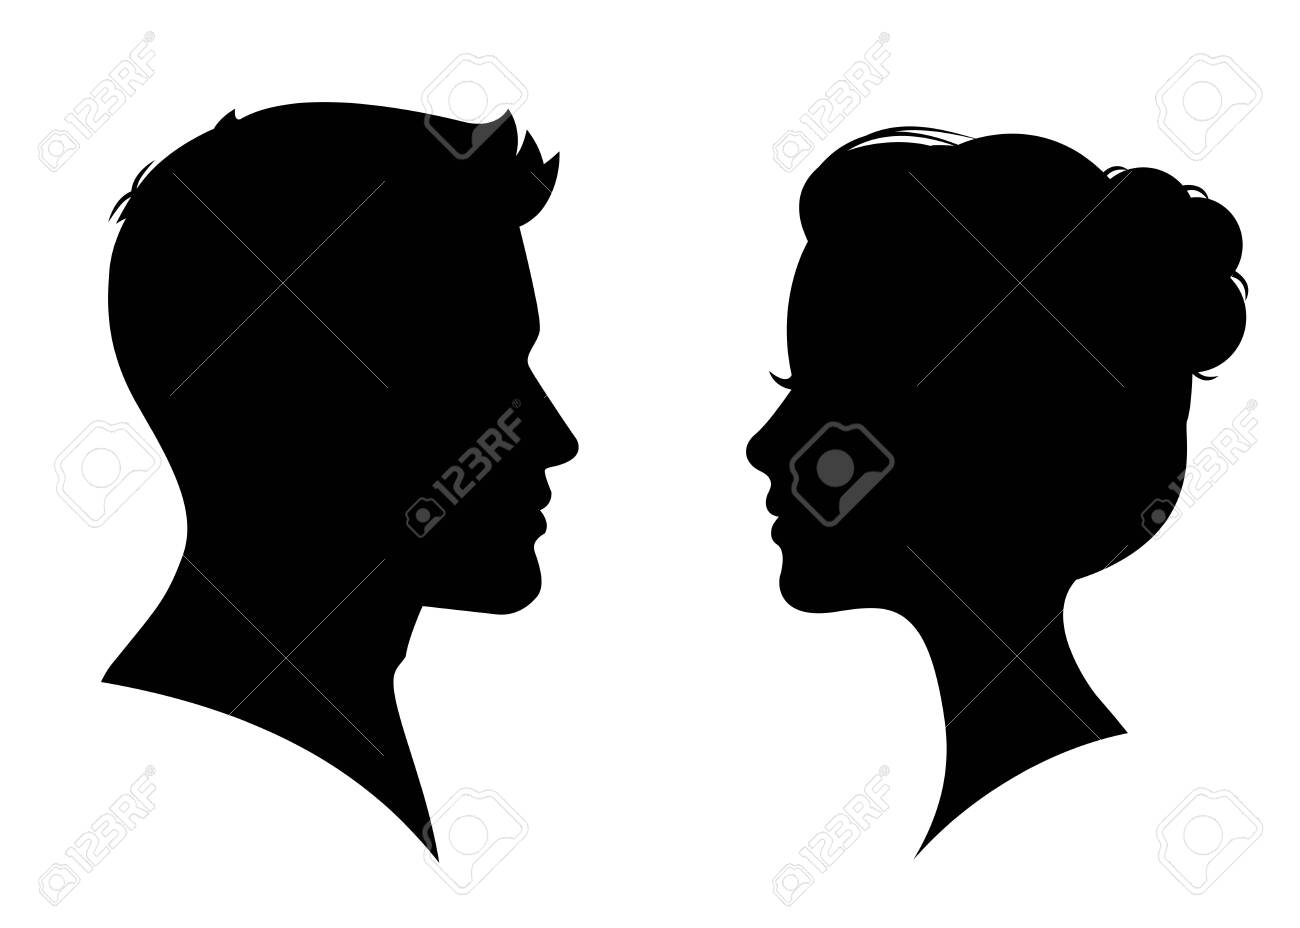 Man and woman silhouette face to face – vector - 149304899